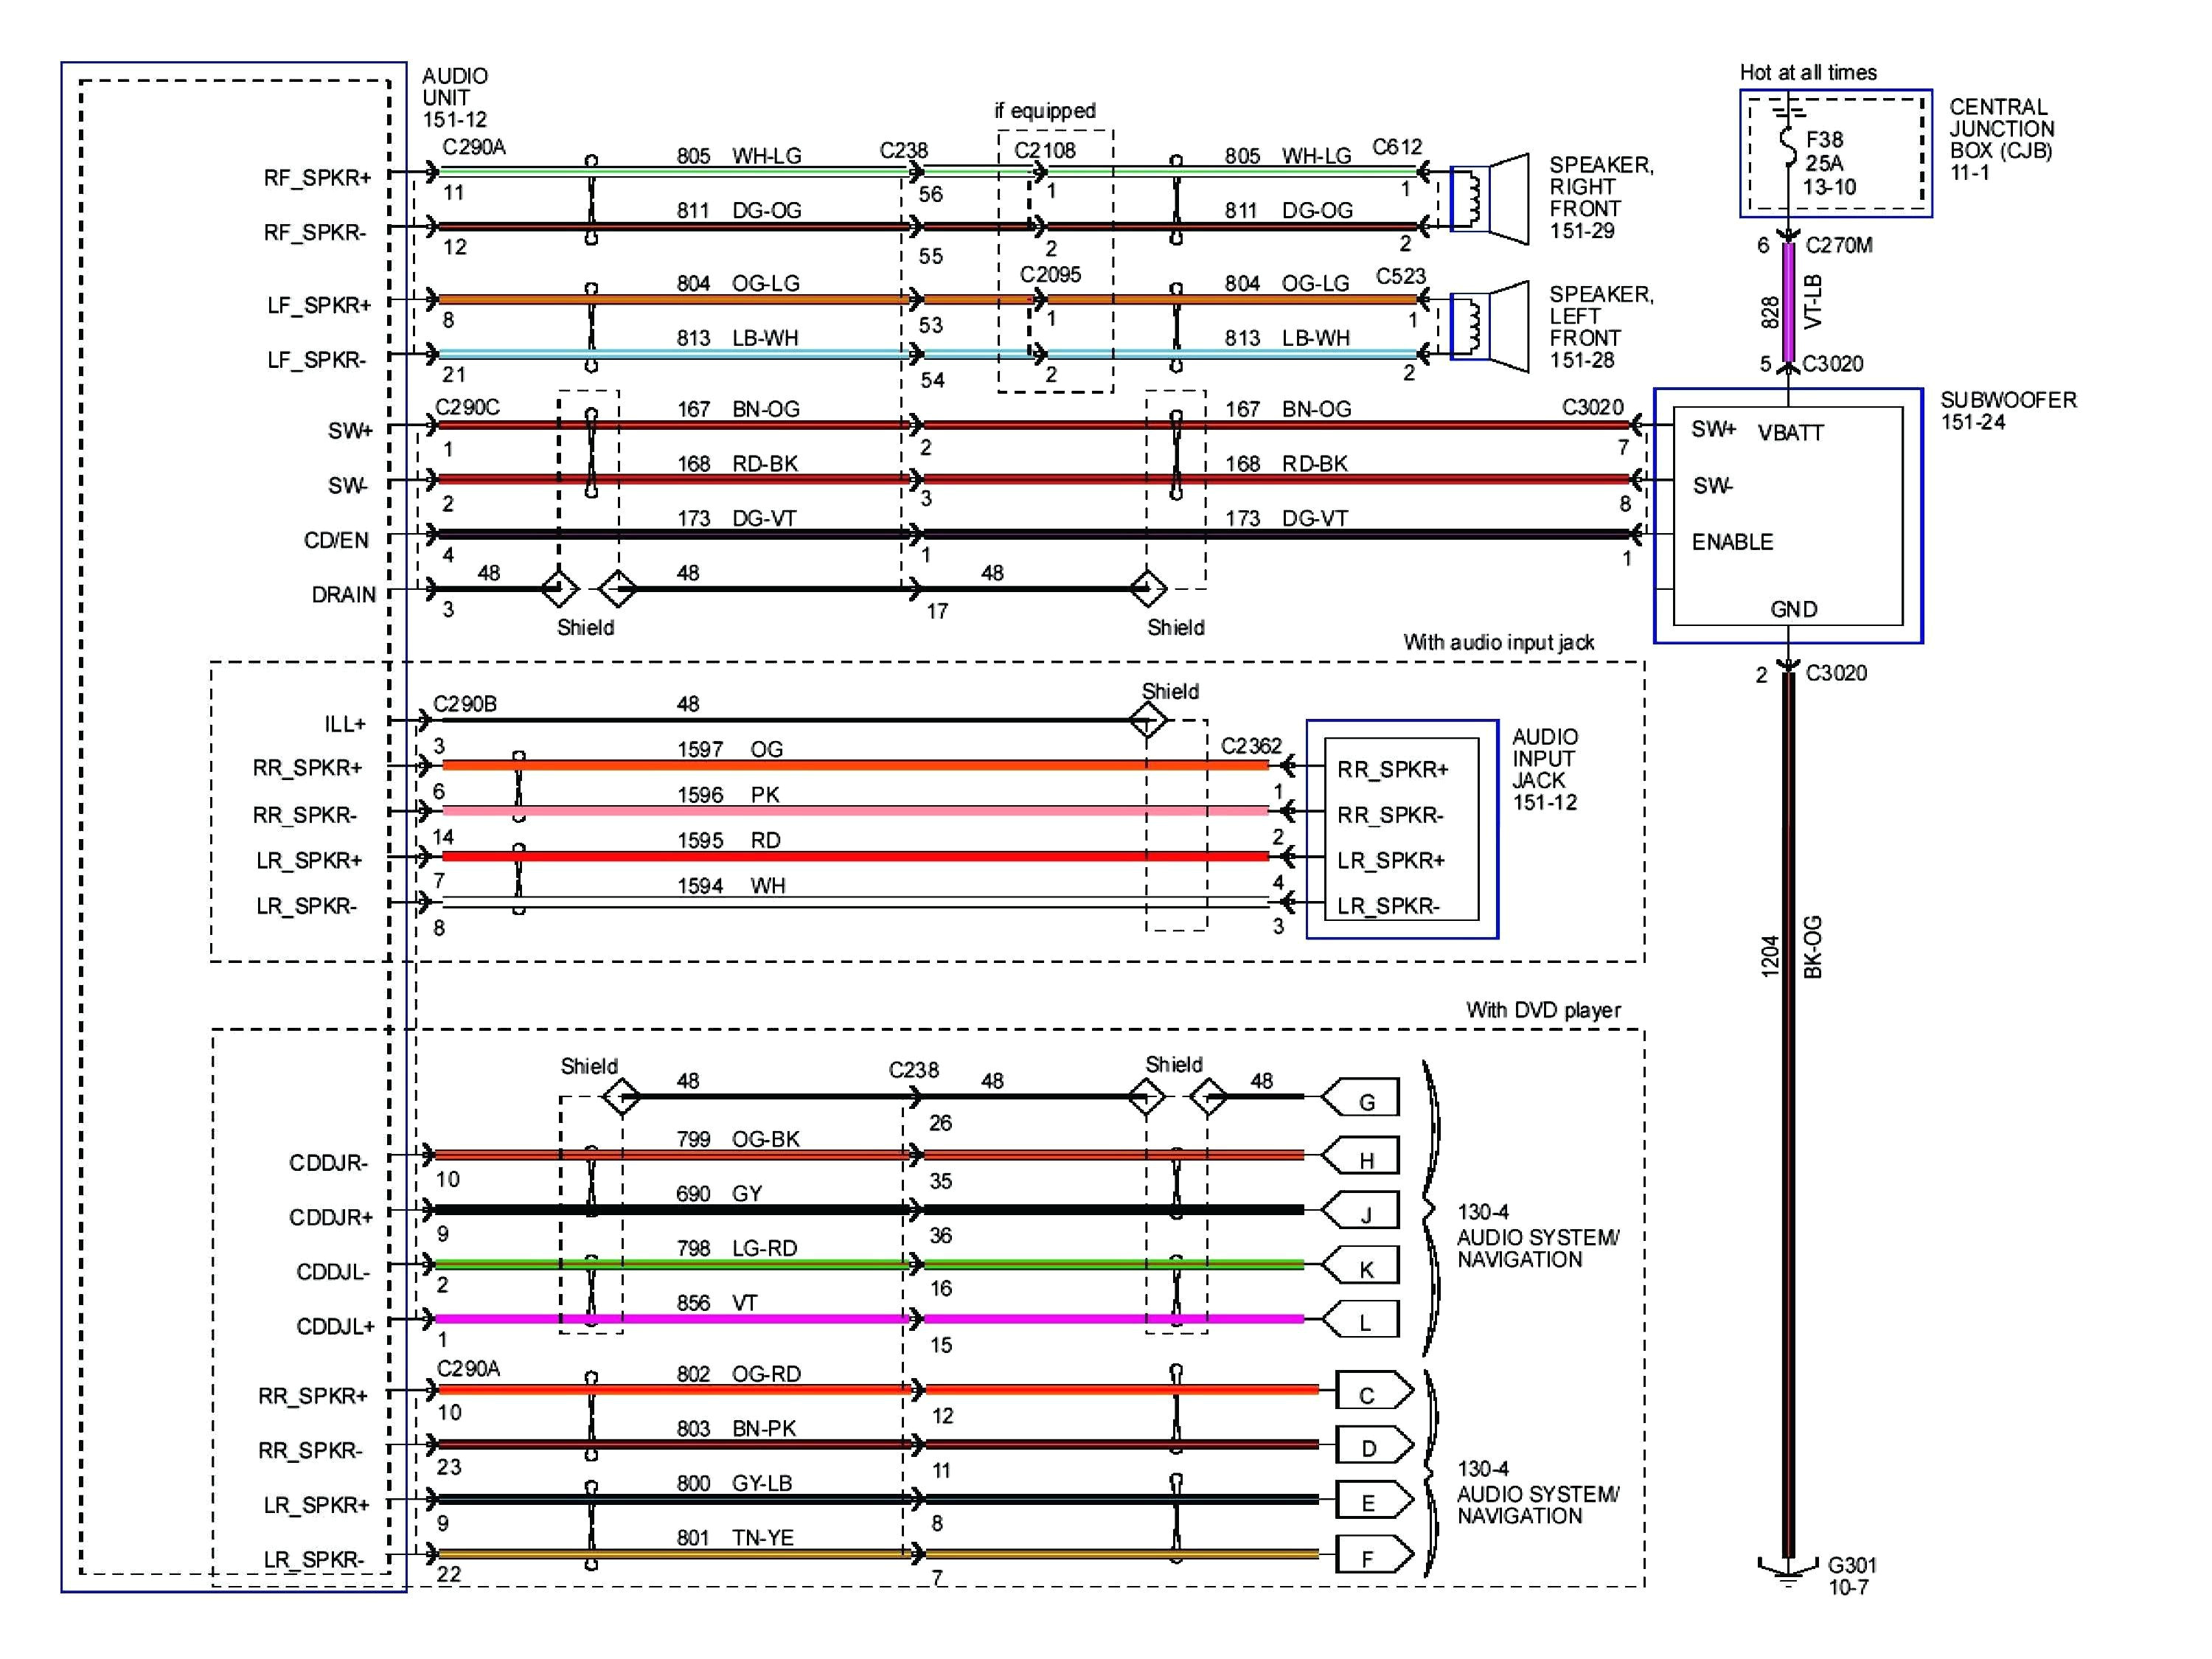 2003 jetta wiring harness diagram simple radio wiring diagram 1983 vw scirocco example electrical wiring of 2003 jetta wiring harness diagram jpg